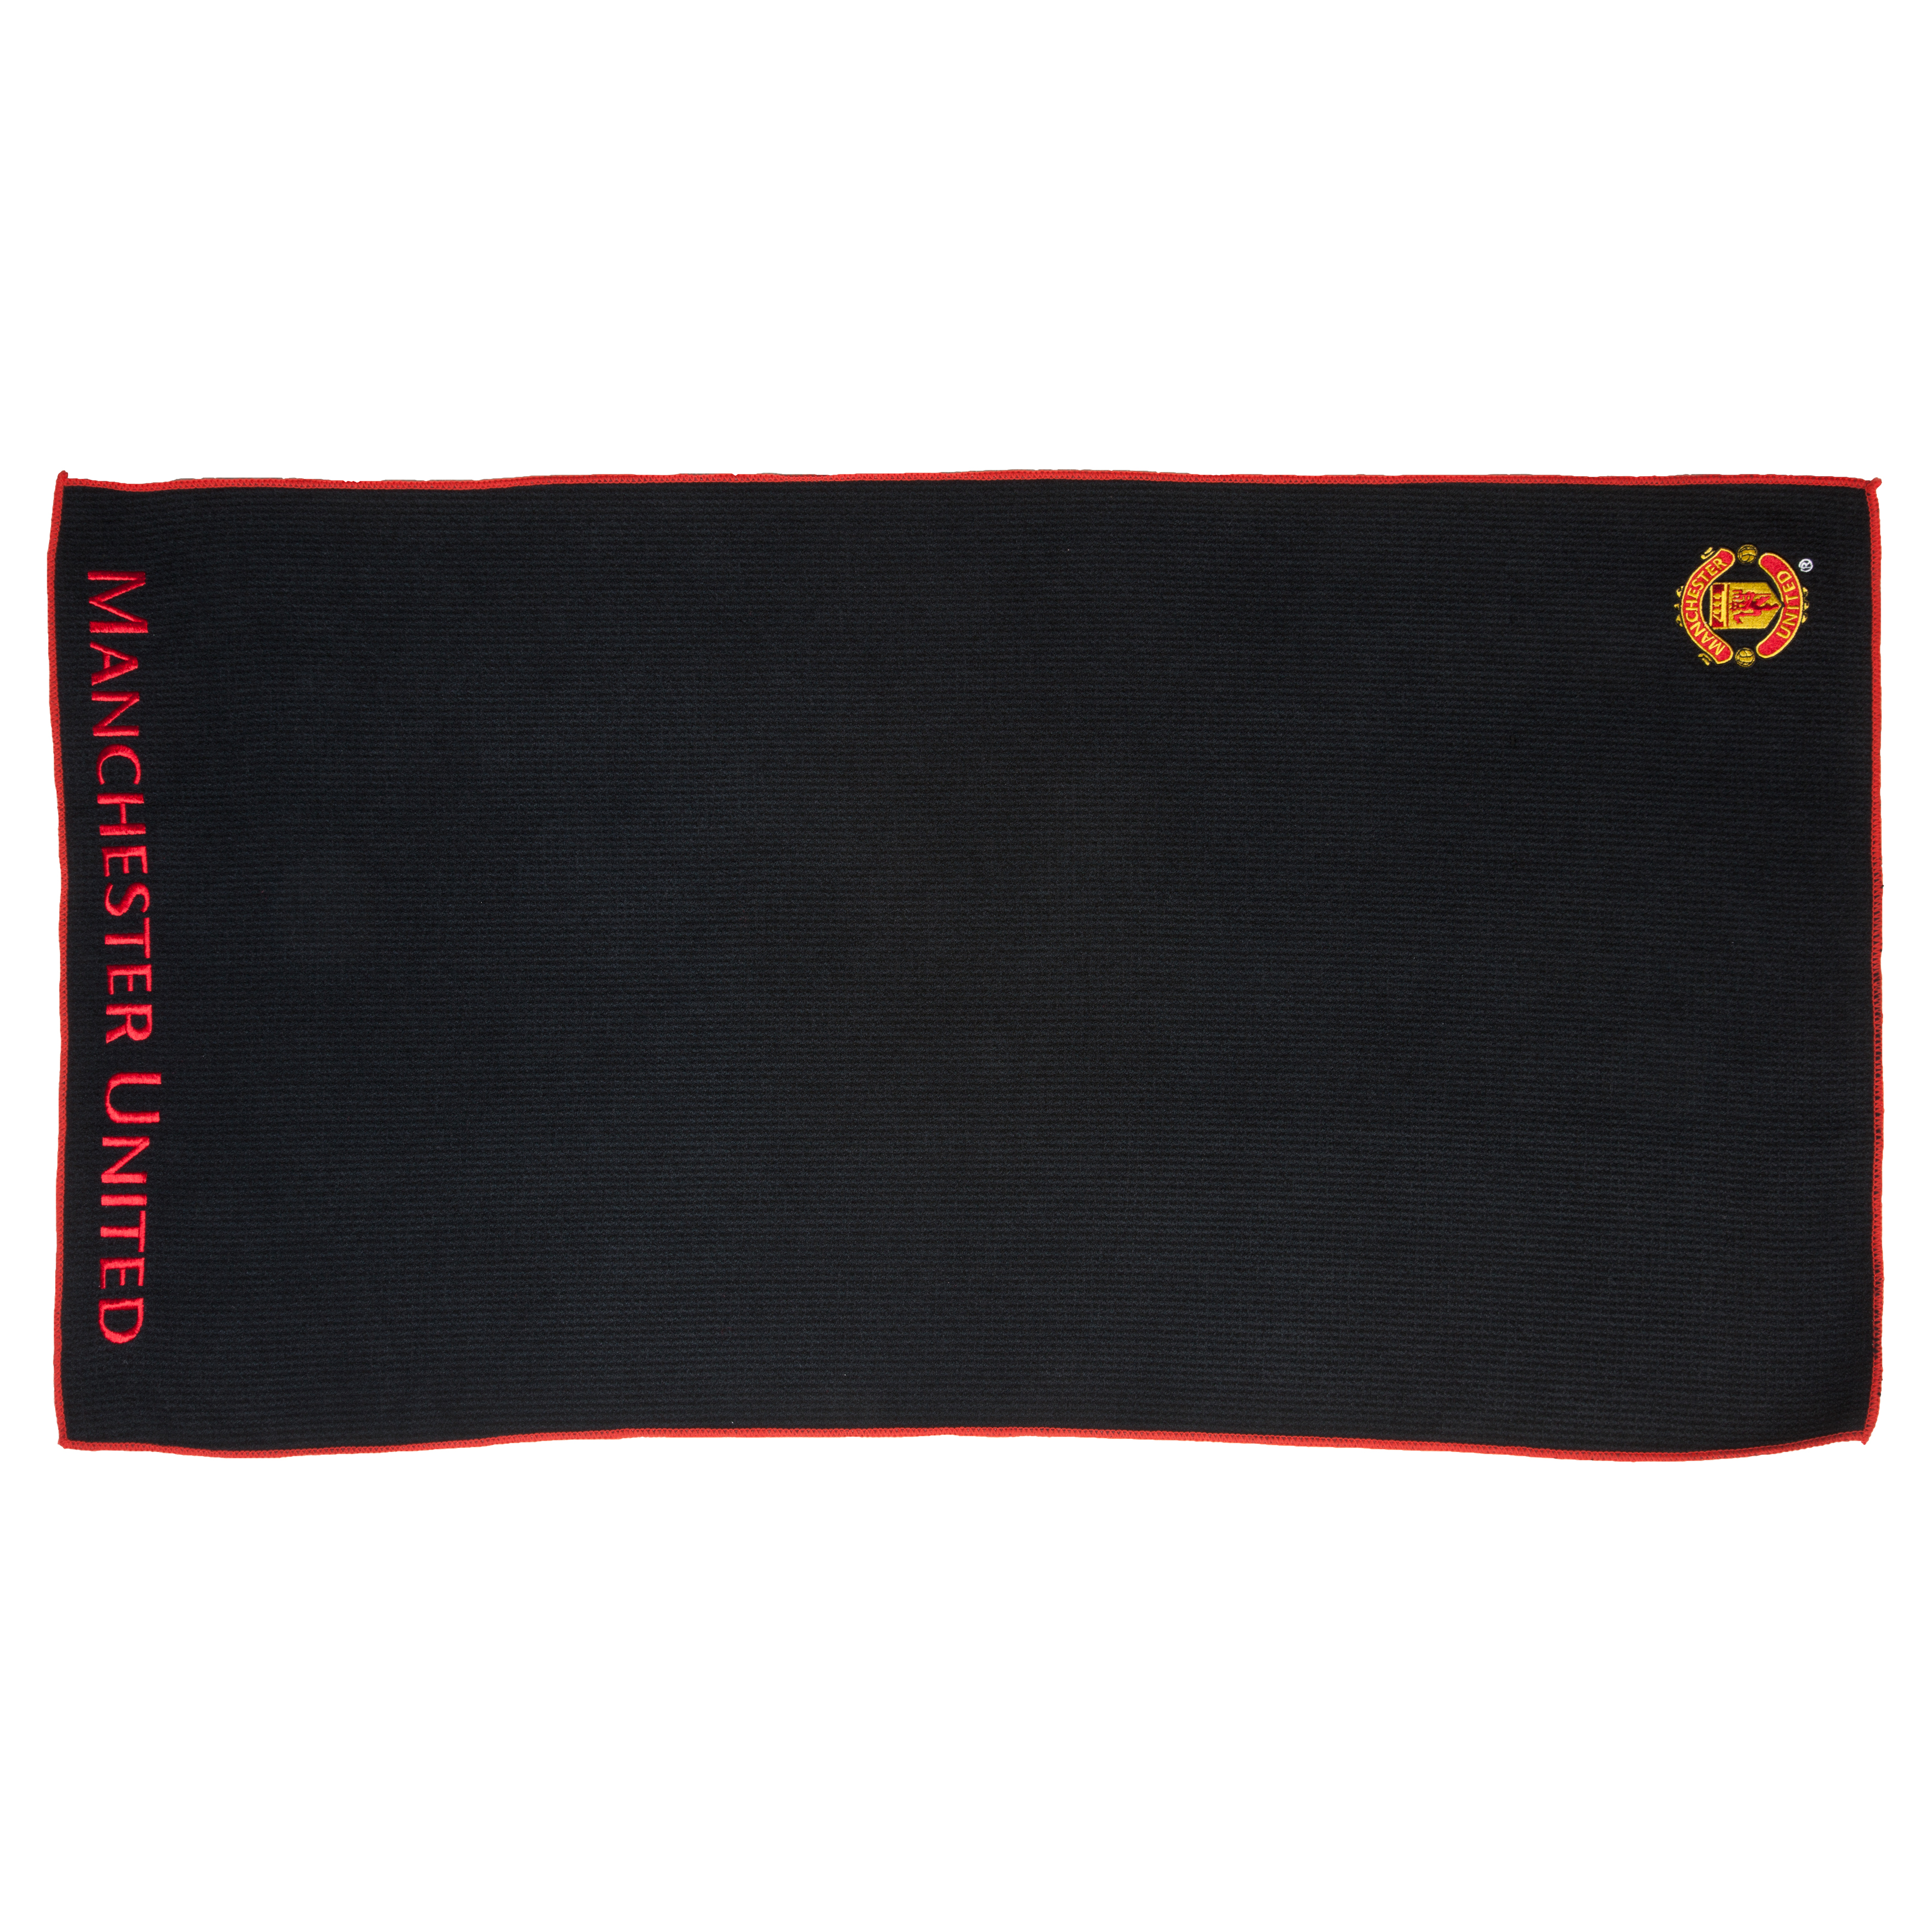 Manchester United Golf Aqualock Caddy Towel